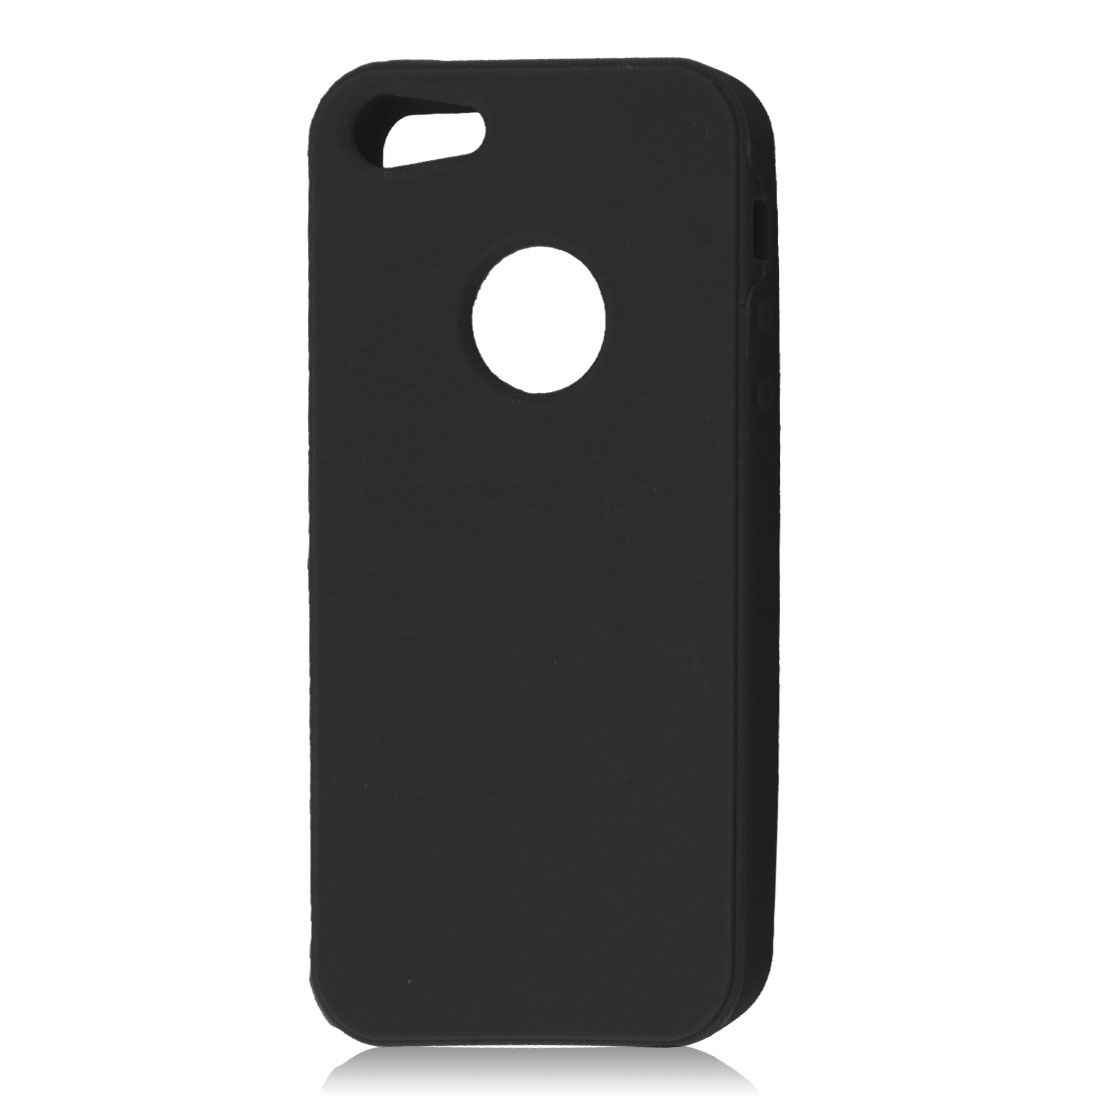 Black Silicone Protective Soft Case Skin Cover for Apple iPhone 5 5G